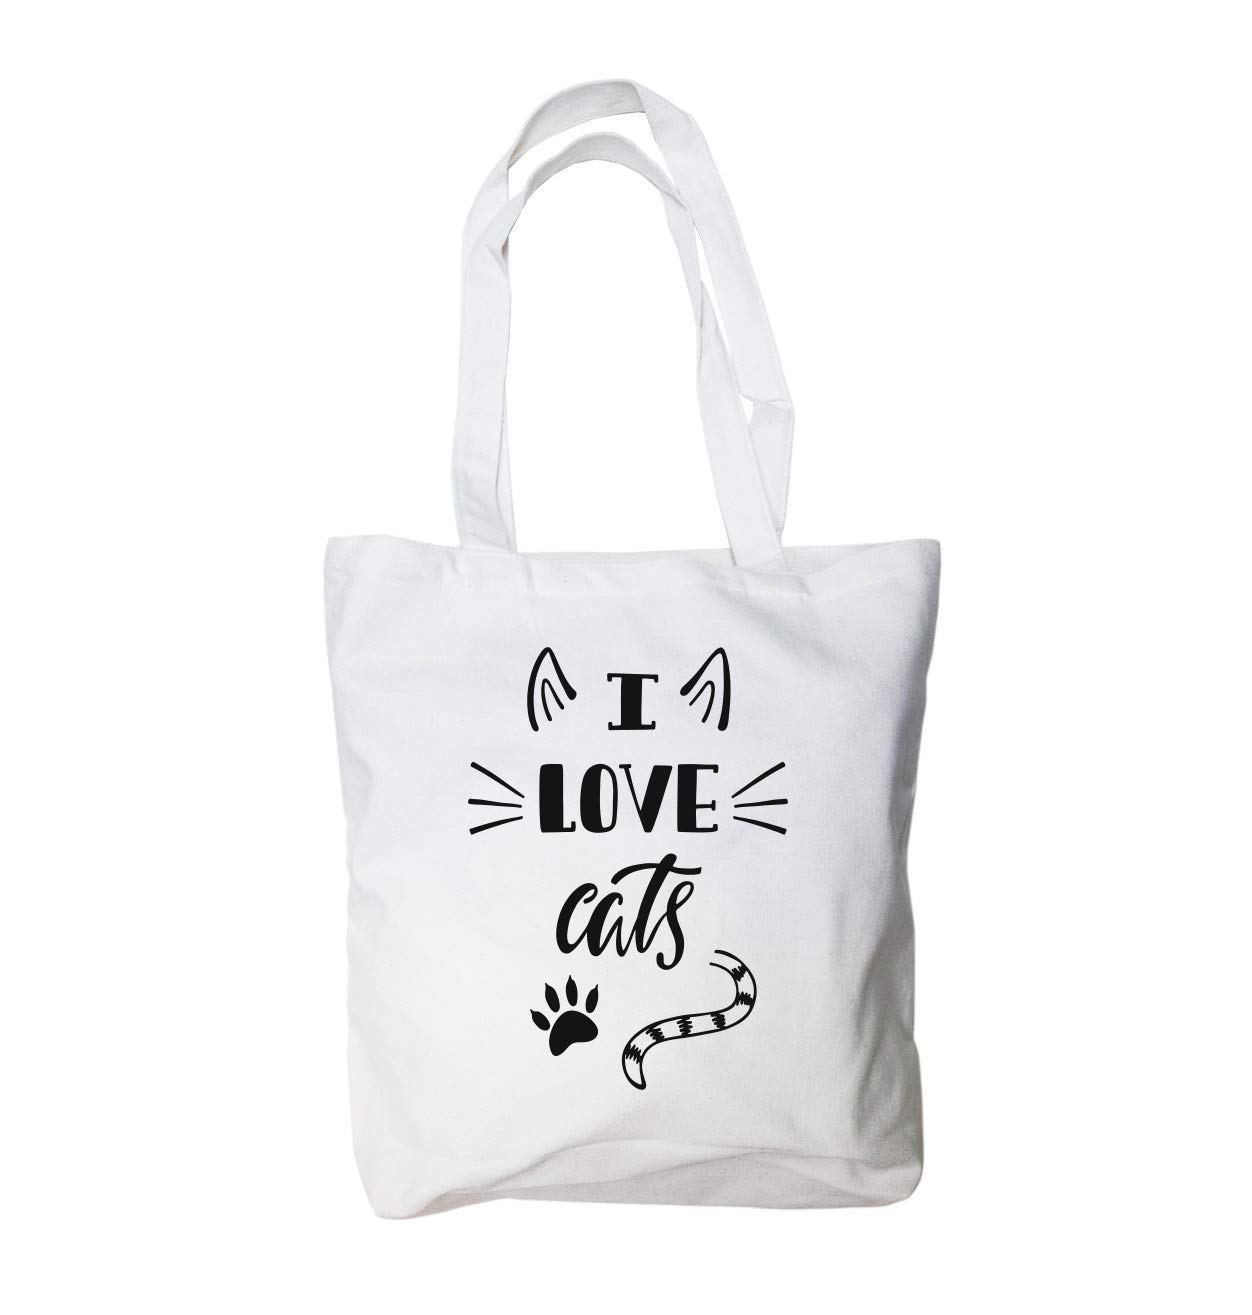 """Dog faces Canvas Tote Bag 12 Oz 100% Cotton (15"""" X16"""" X3"""" ) Reusable Ideal for Groceries, Shopping, School. Personalize it with permanent marker included"""